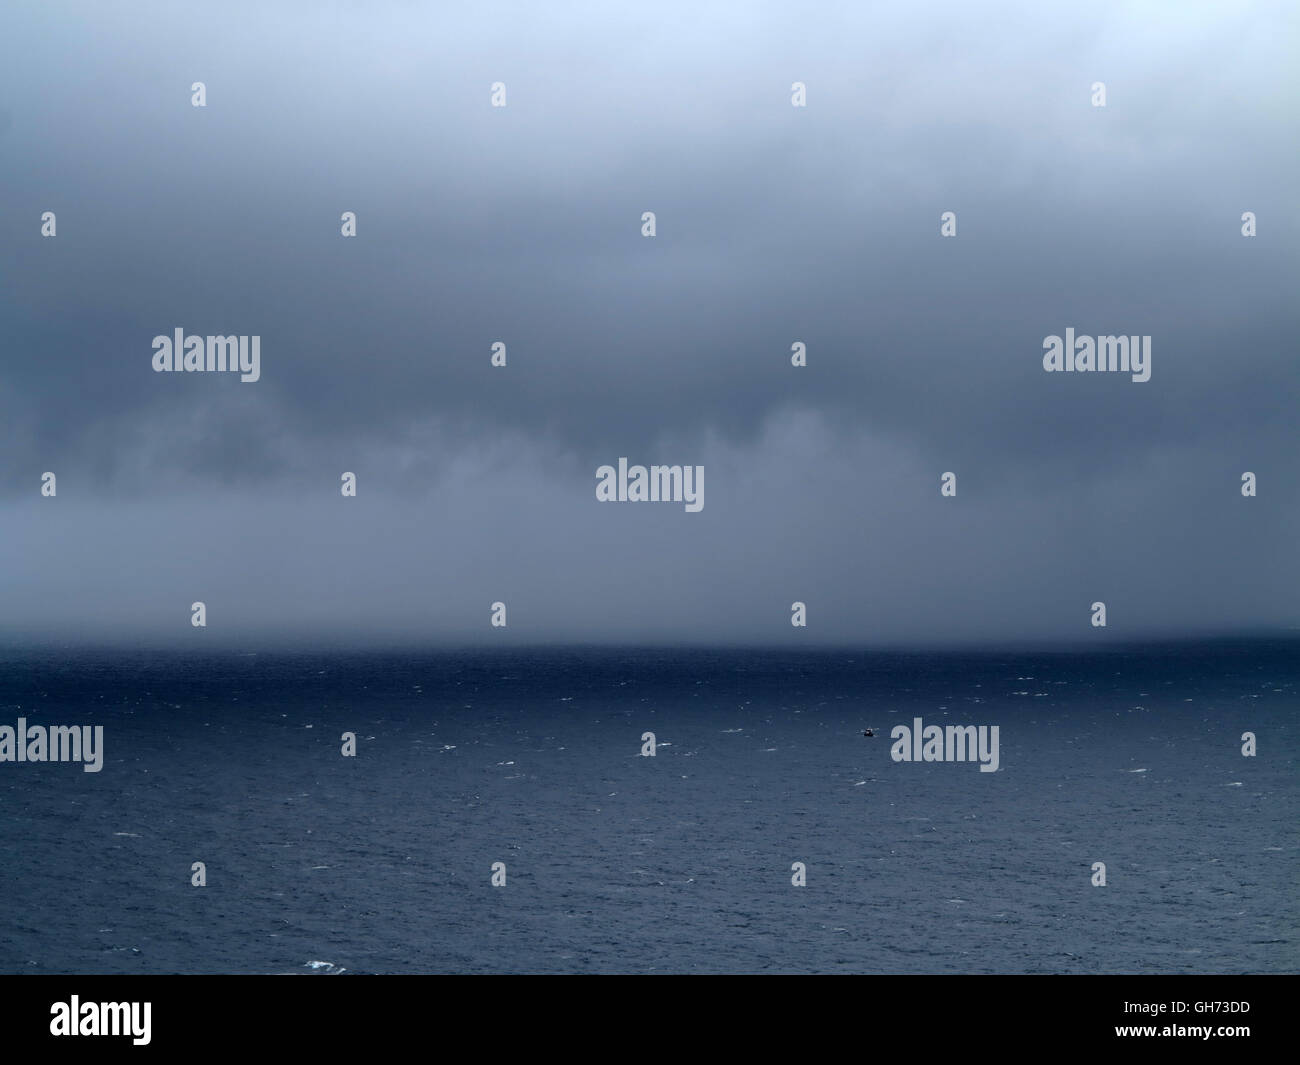 Rain over Atlantic Ocean - County clare - Ireland - Stock Image